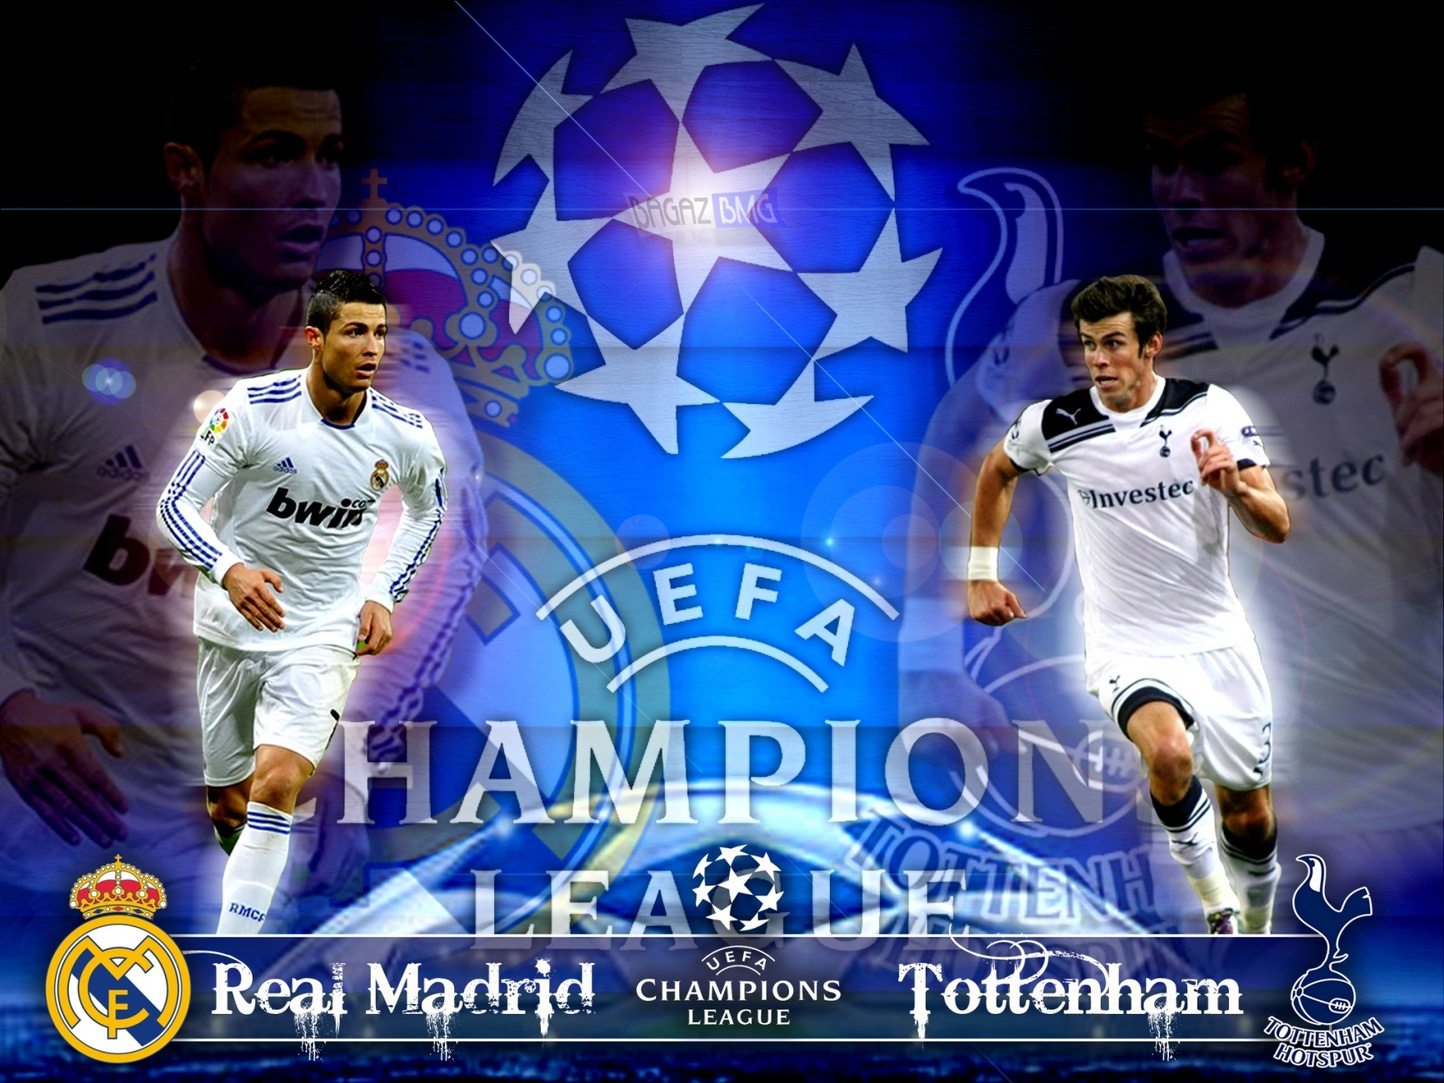 Real Madrid Real Madrid Wallpaper Wallpaper Gratis Gratis Wallpaper